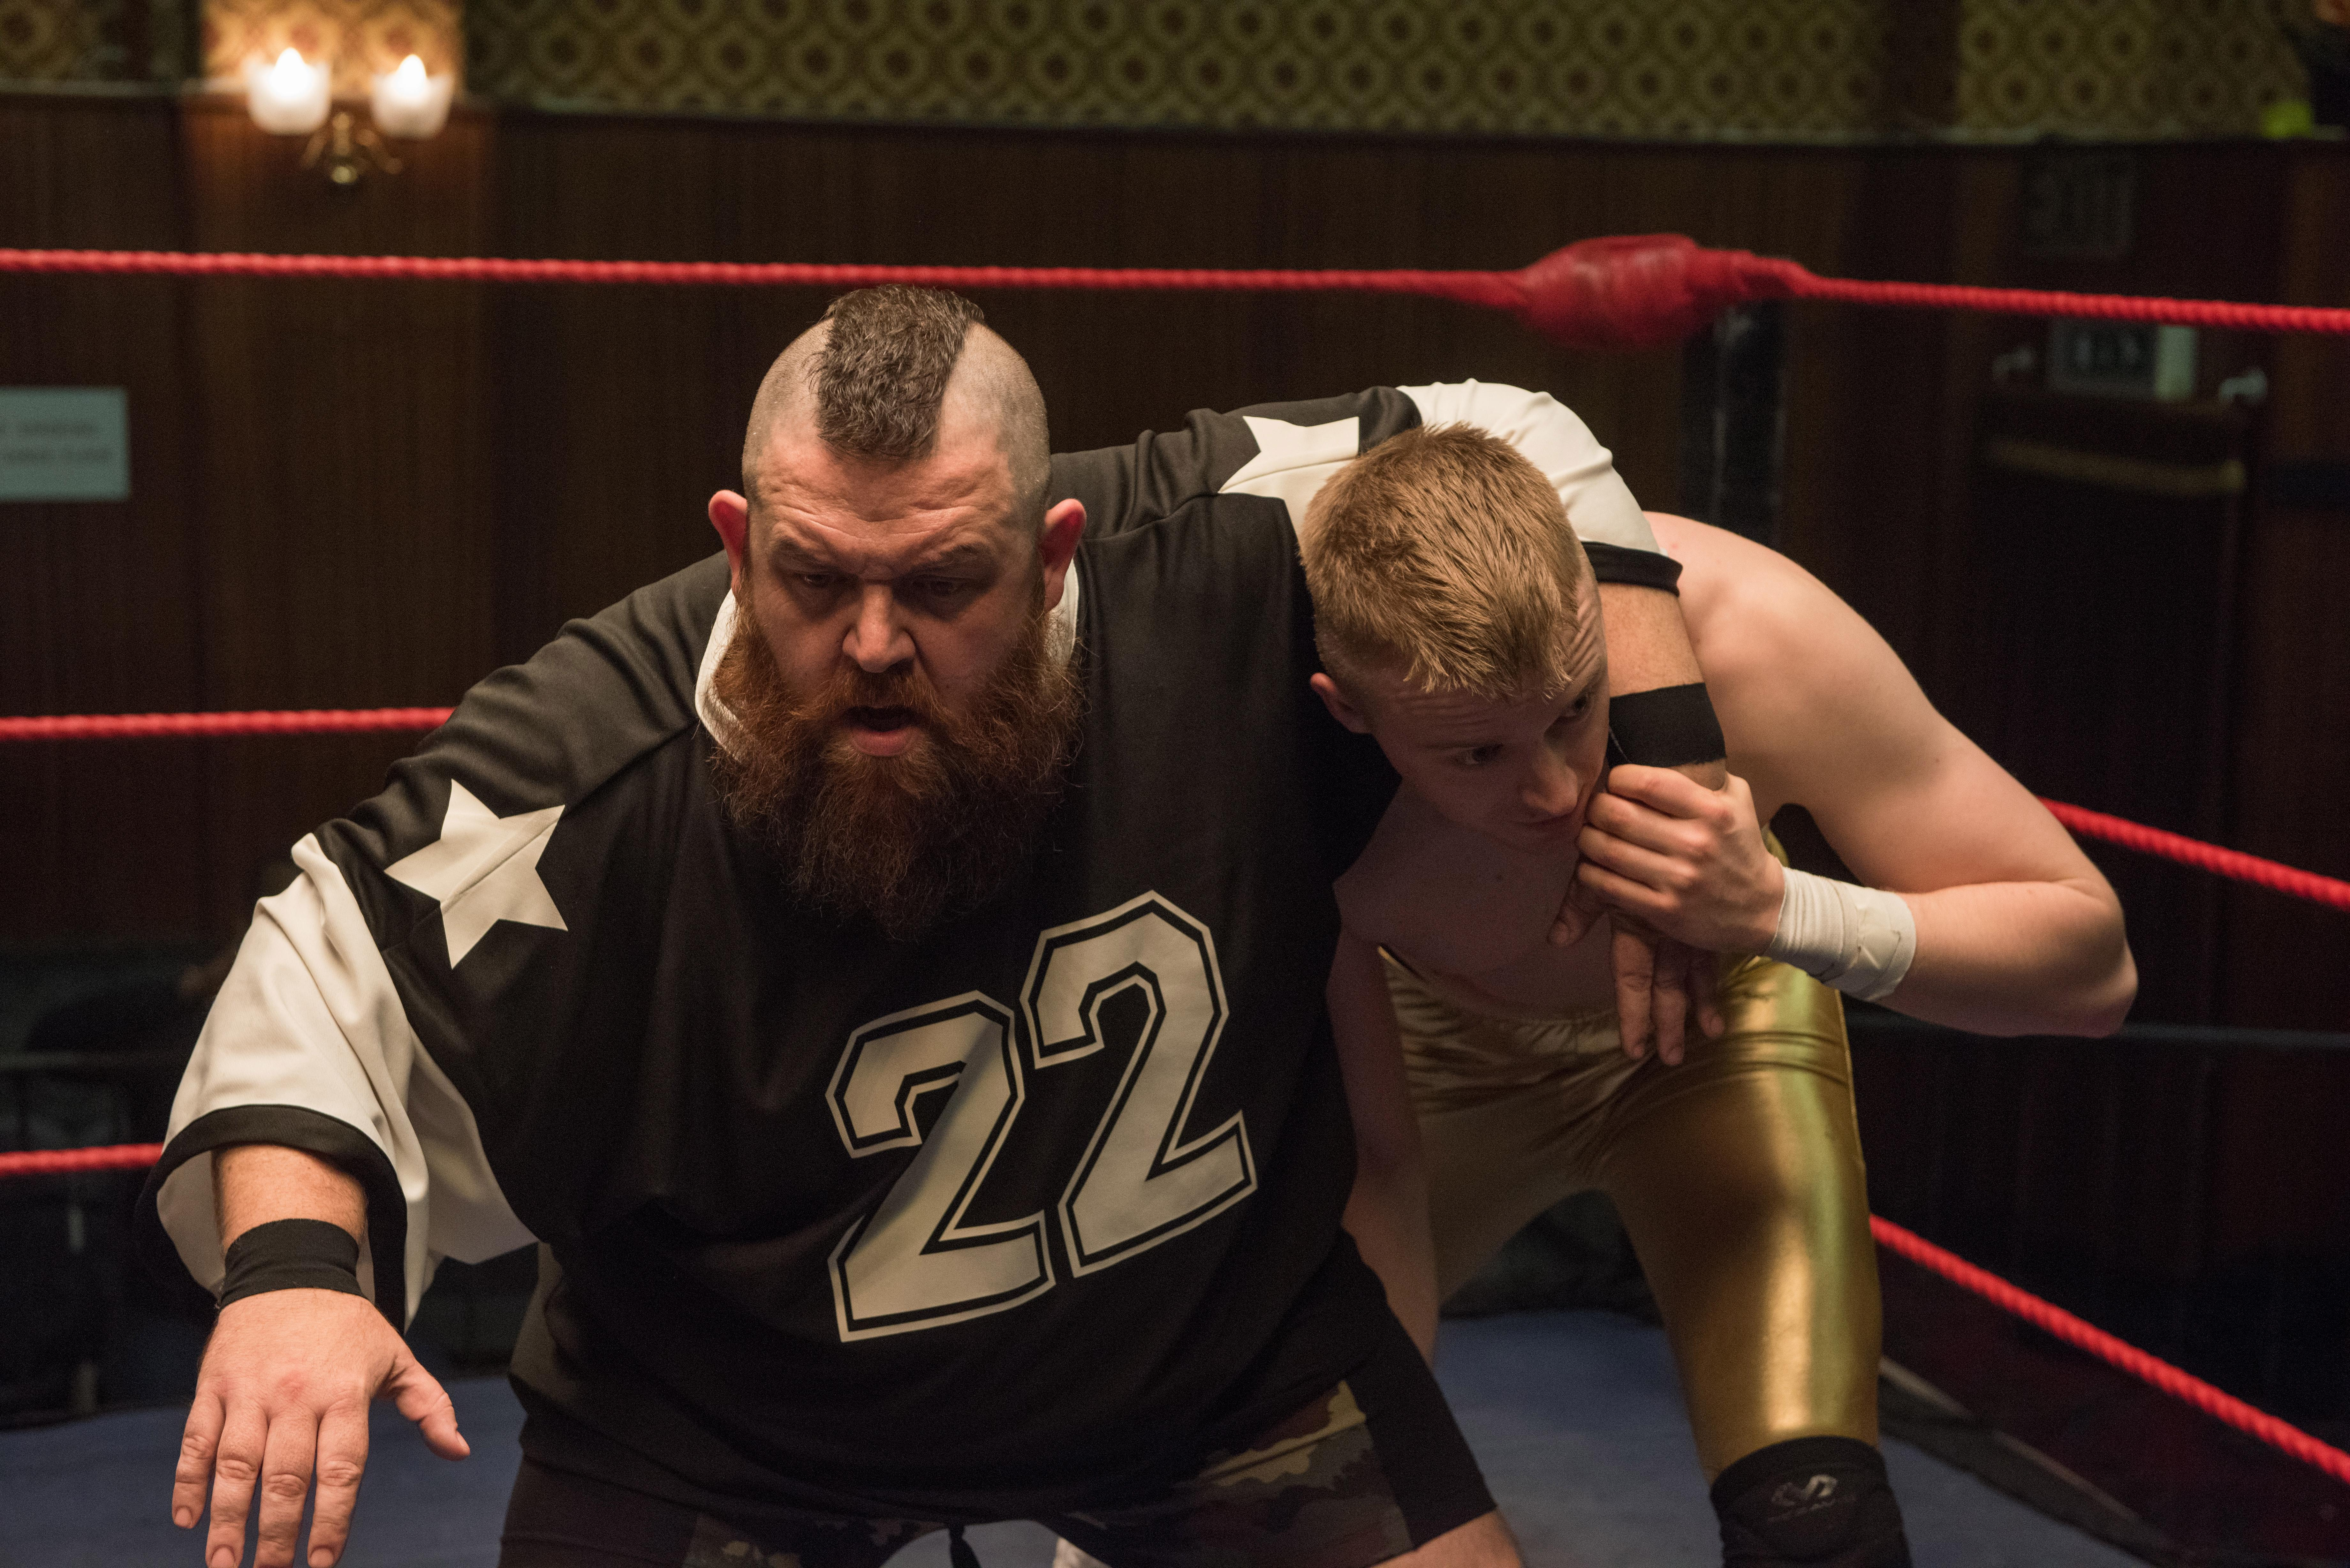 Nick Frost as Ricky Knight and Jack Lowden as Zak Knight in FIGHTING WITH MY FAMILY, directed by Stephen Merchant, a Metro Goldwyn Mayer Pictures film.Credit: Robert Viglasky / Metro Goldwyn Mayer Pictures© 2018 Metro-Goldwyn-Mayer Pictures Inc.{ } All Rights Reserved.